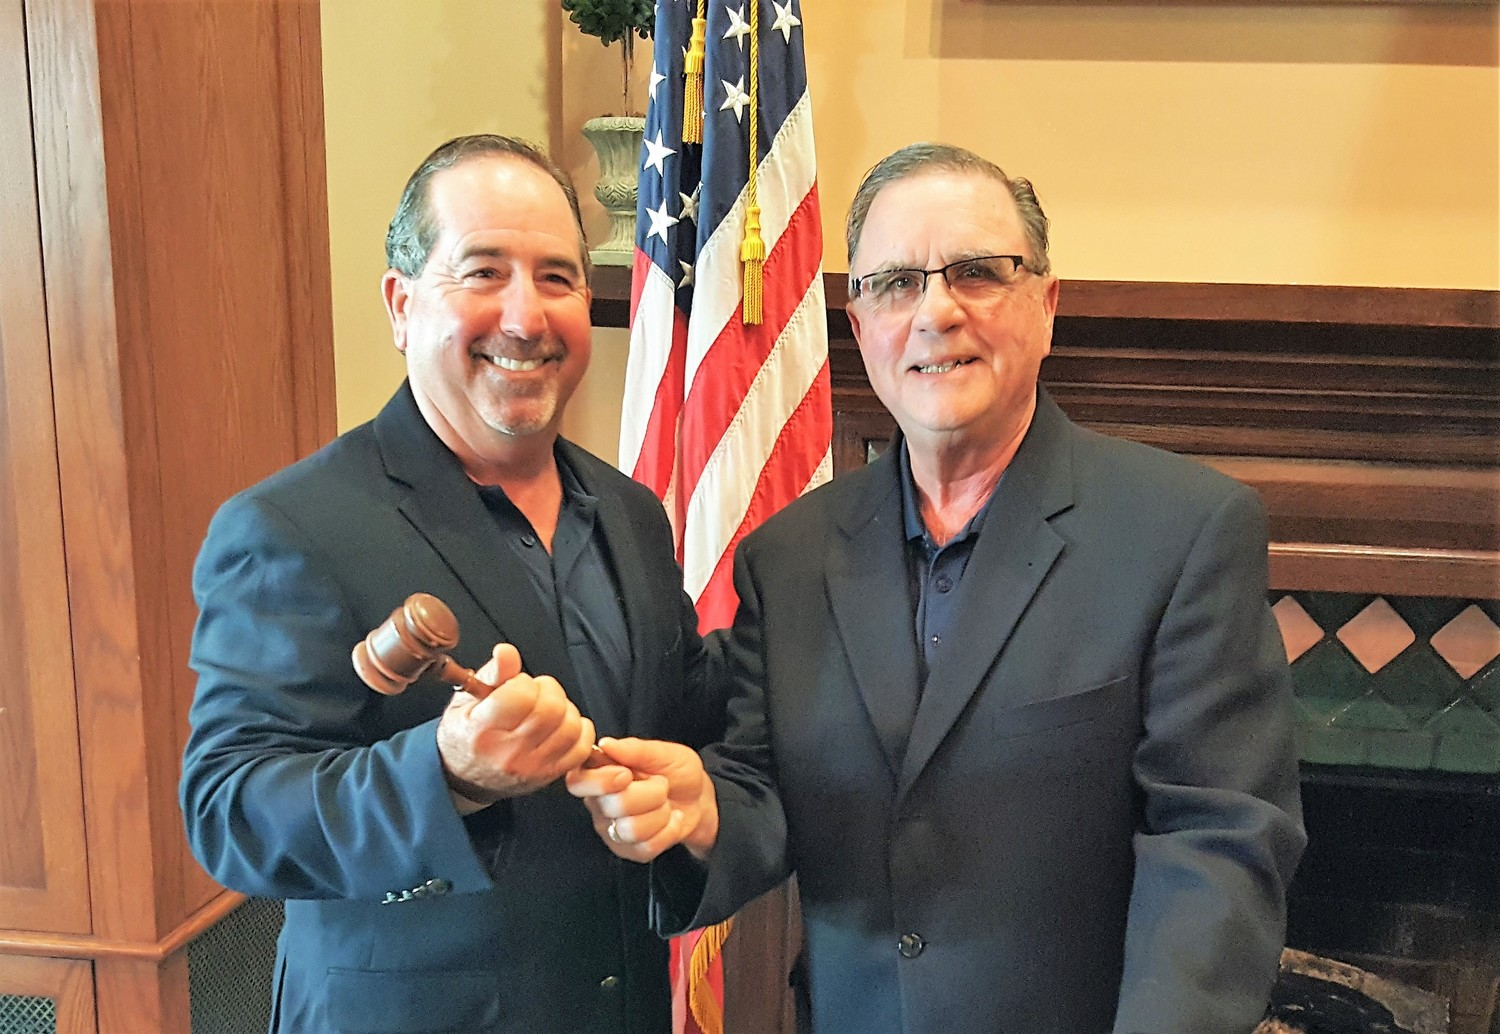 Randy Nader and past President Gilmore with the gavel.